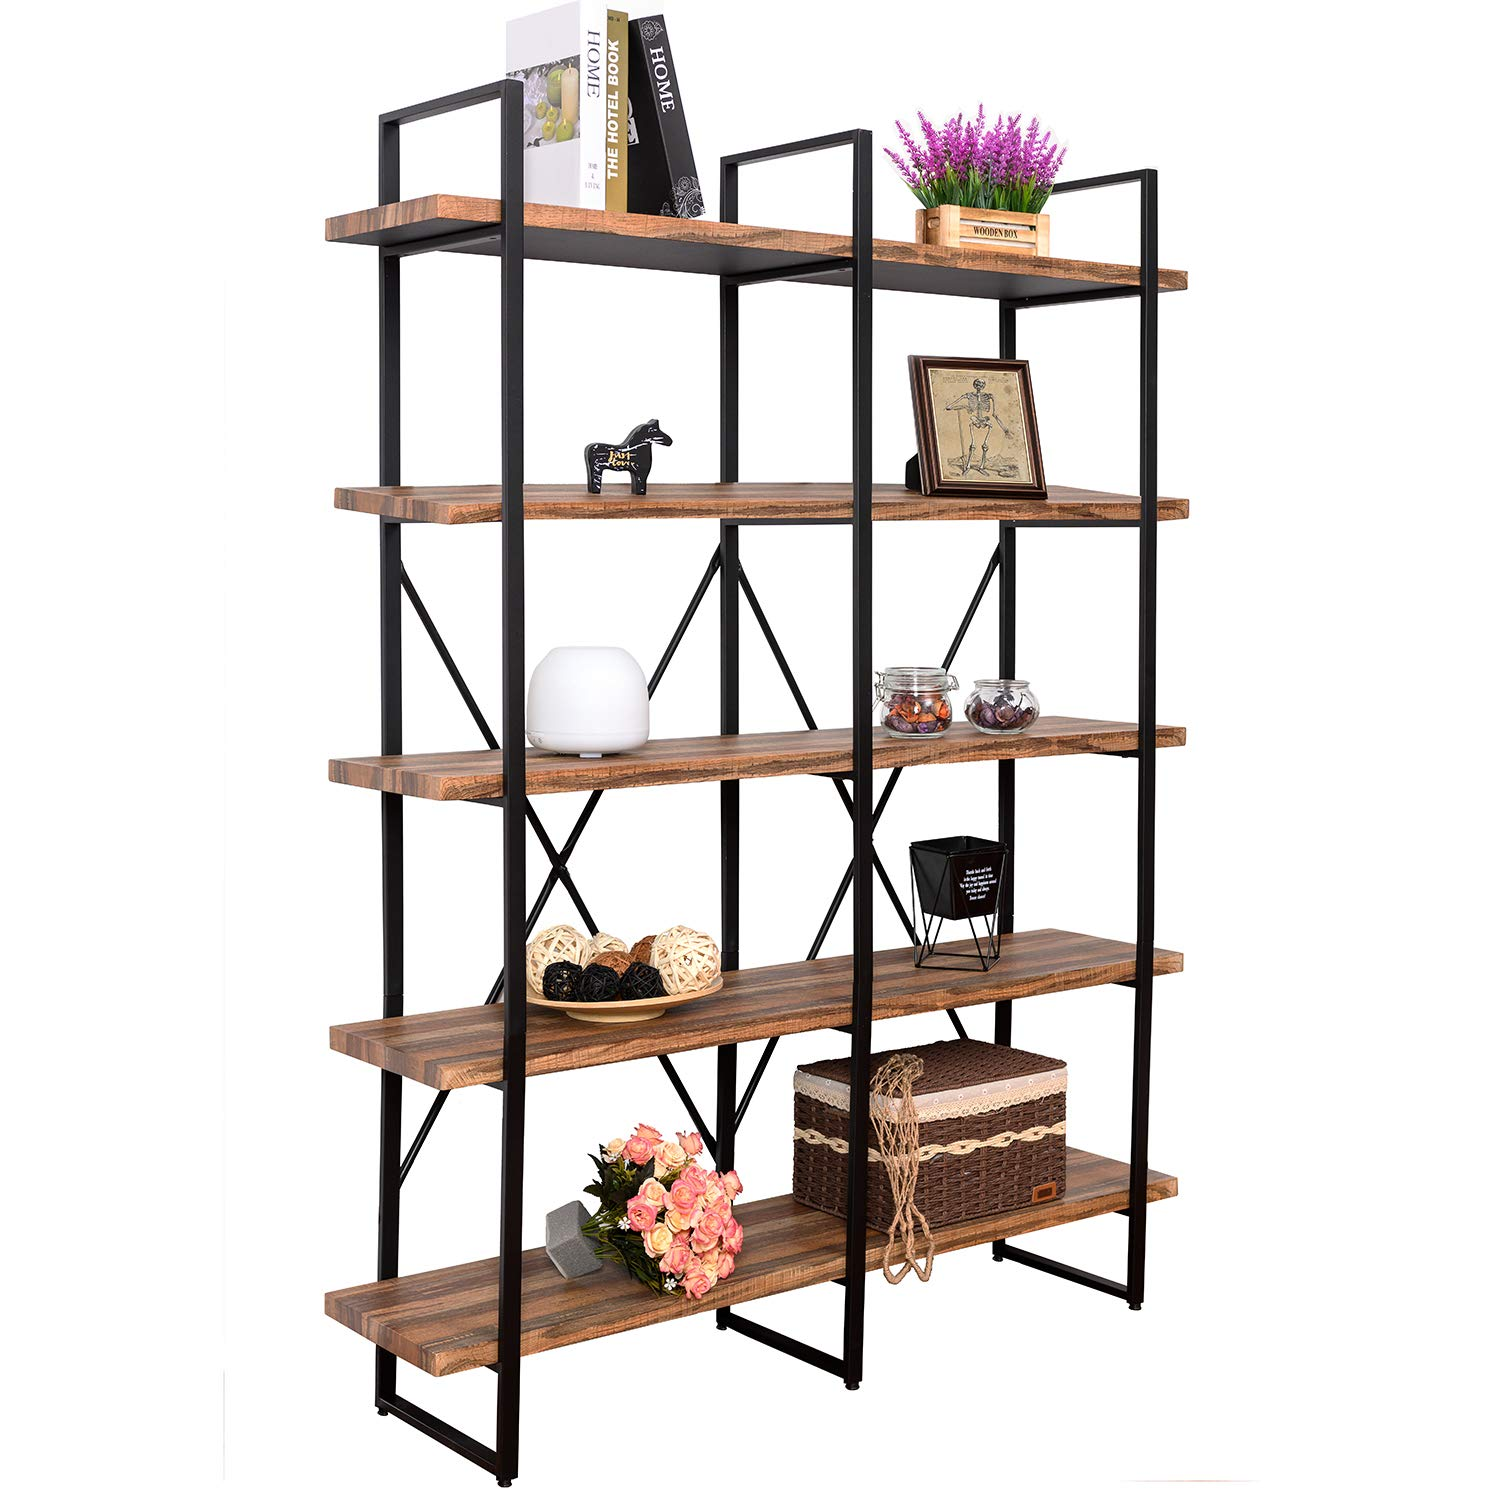 IRONCK Bookshelf, Double Wide 5-Tier Open Bookcase Vintage Industrial Large Shelves, Wood and Metal Etagere Bookshelves, for Home Decor Display, Office Furniture by IRONCK (Image #2)